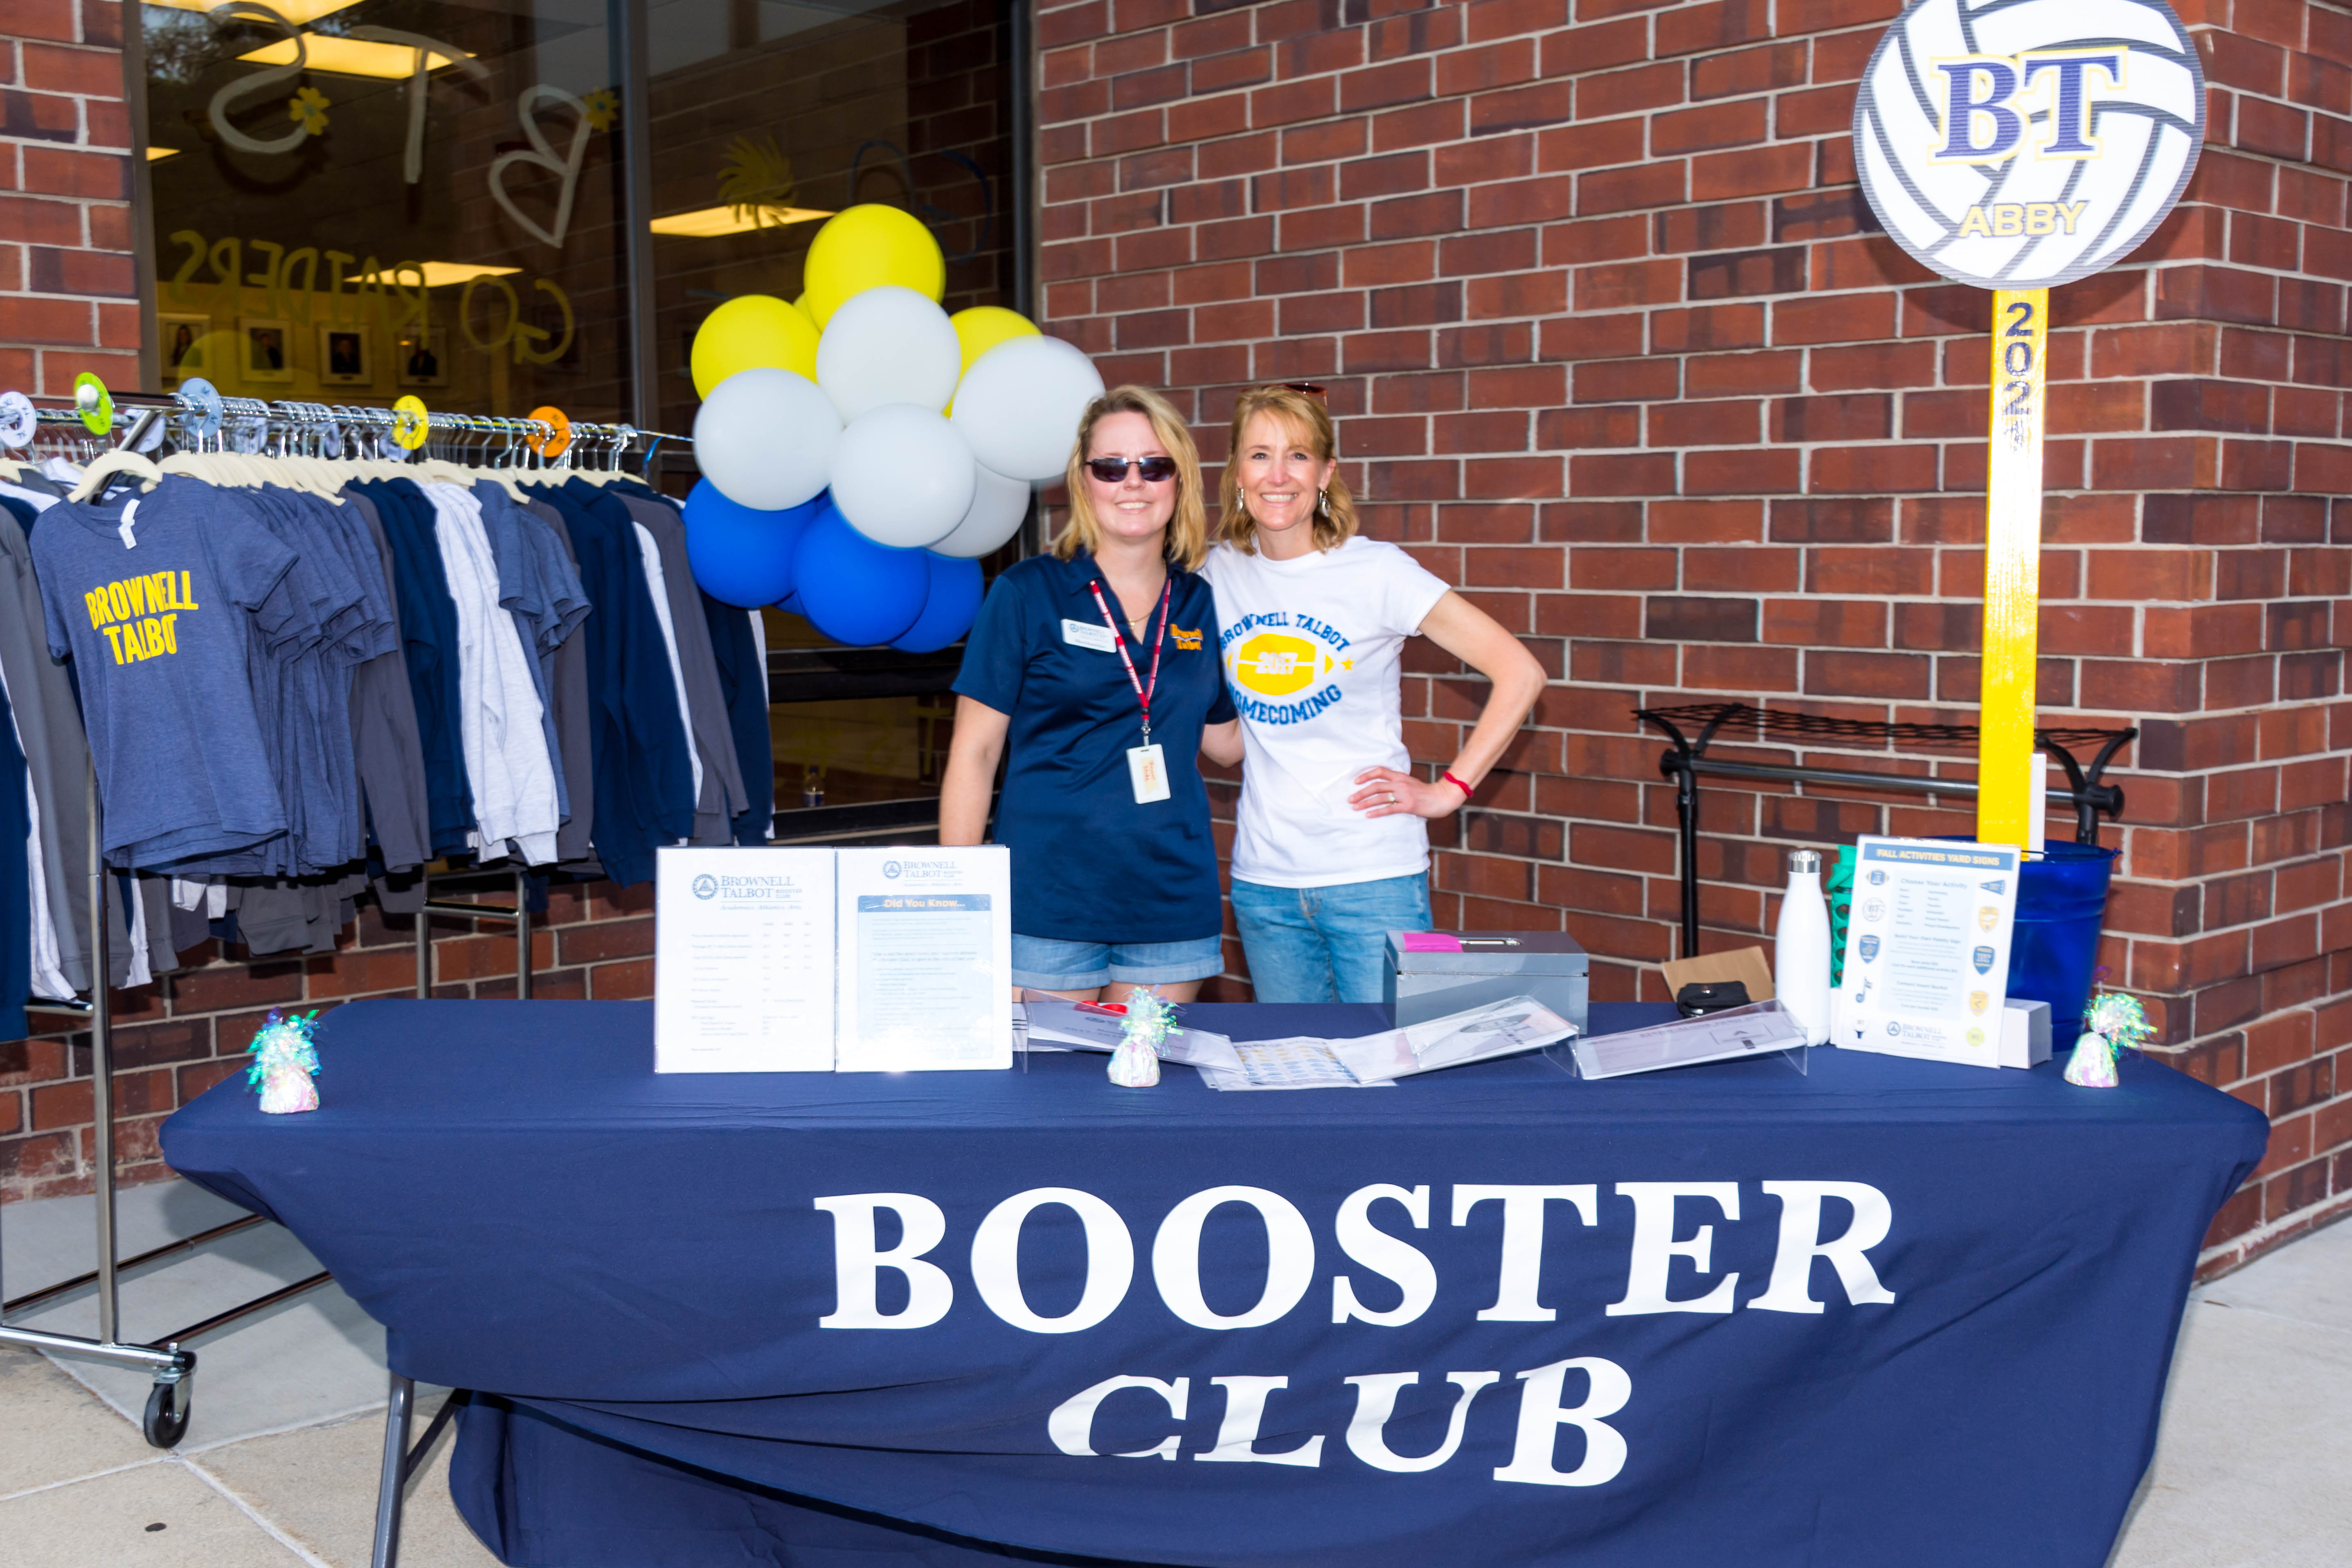 Booster club at Brownell Talbot